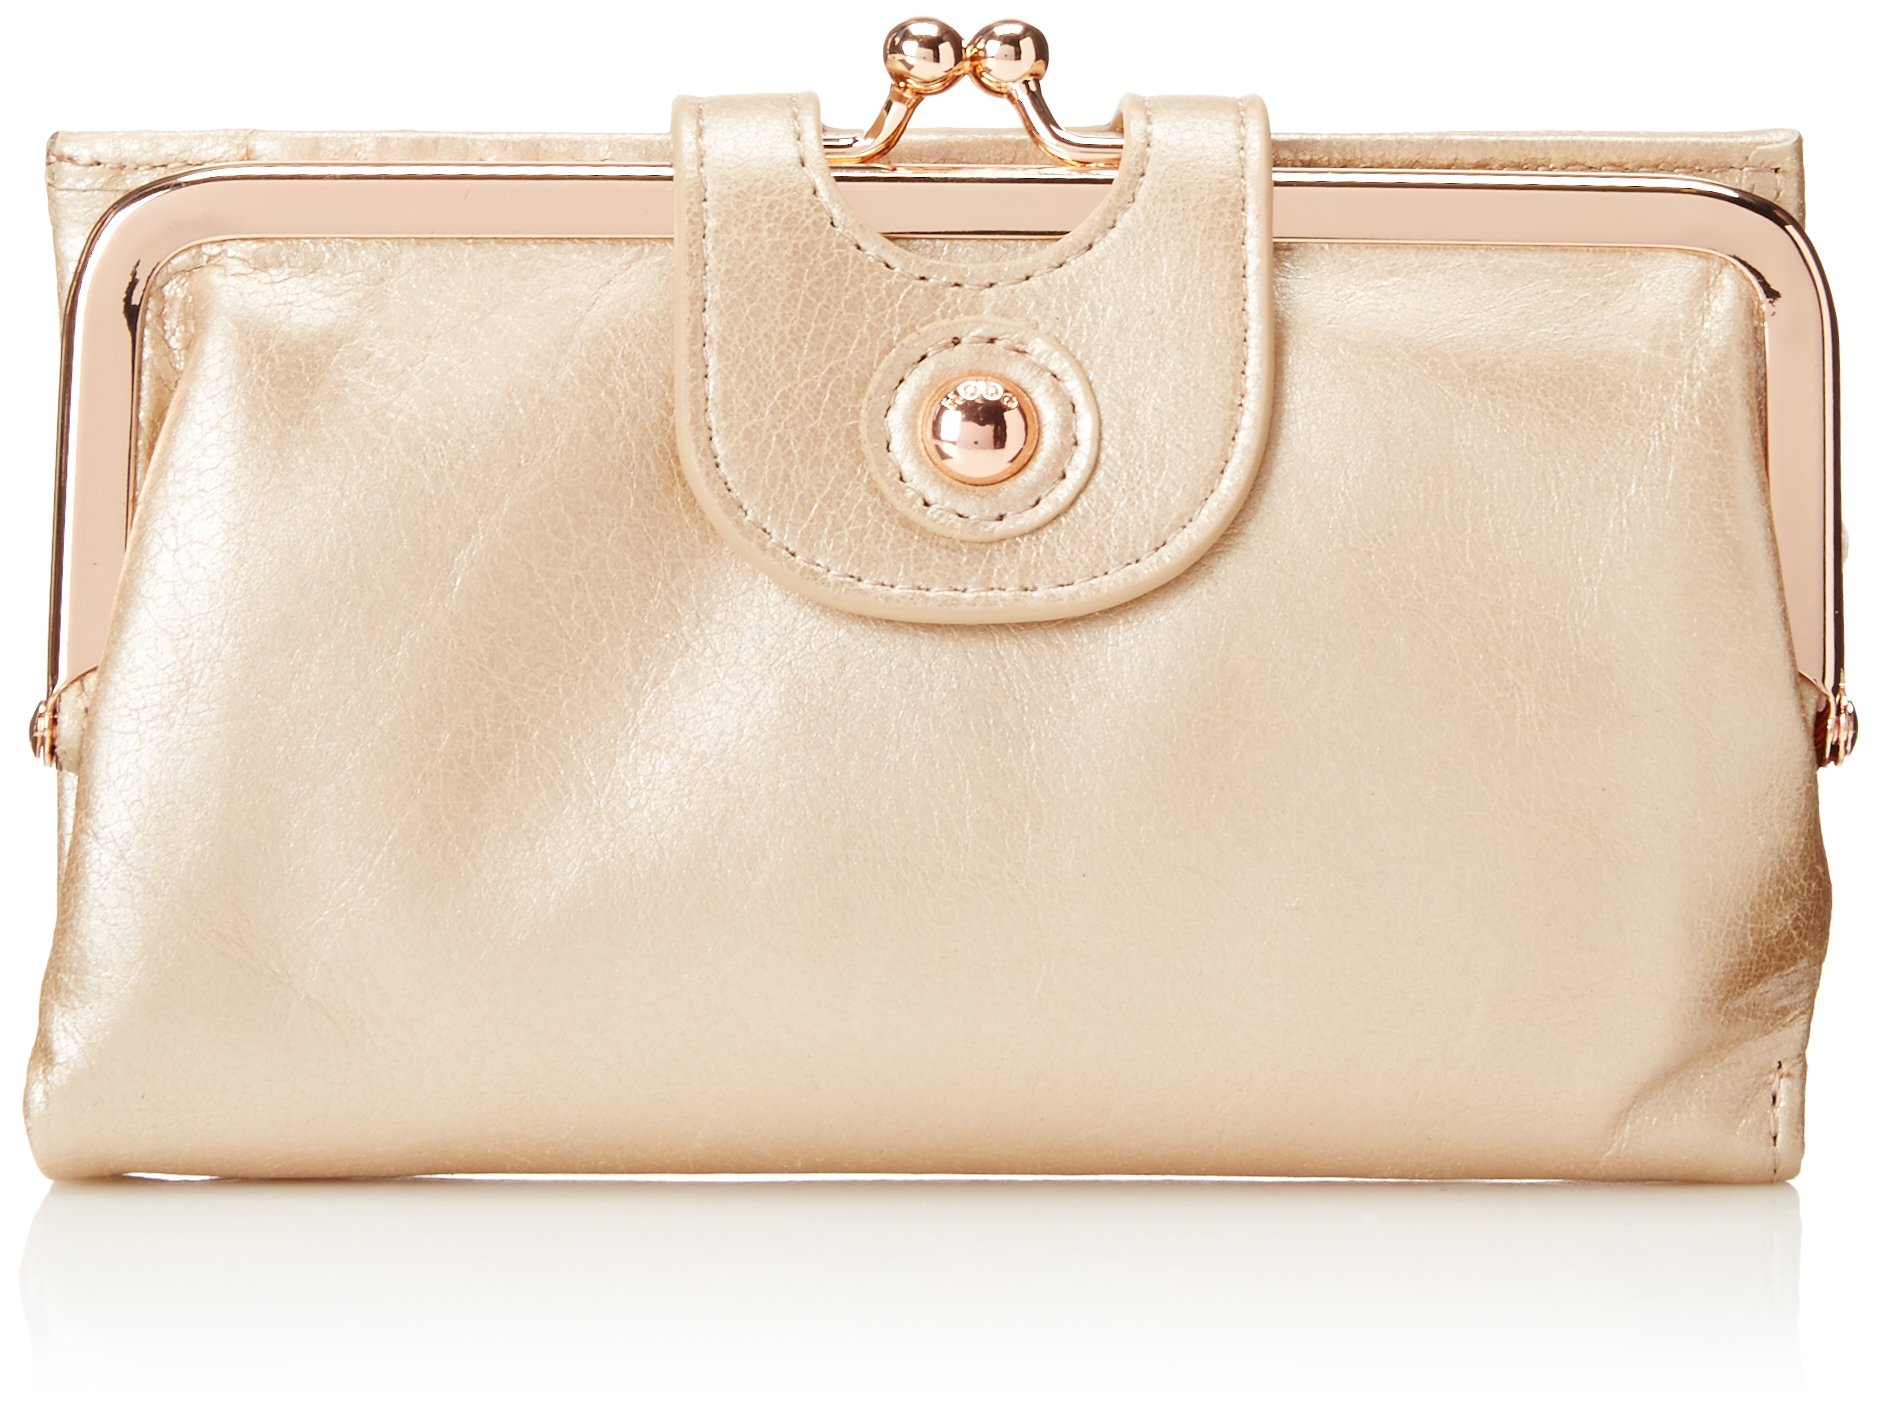 HOBO Vintage Alice Wallet, Blush, One Size